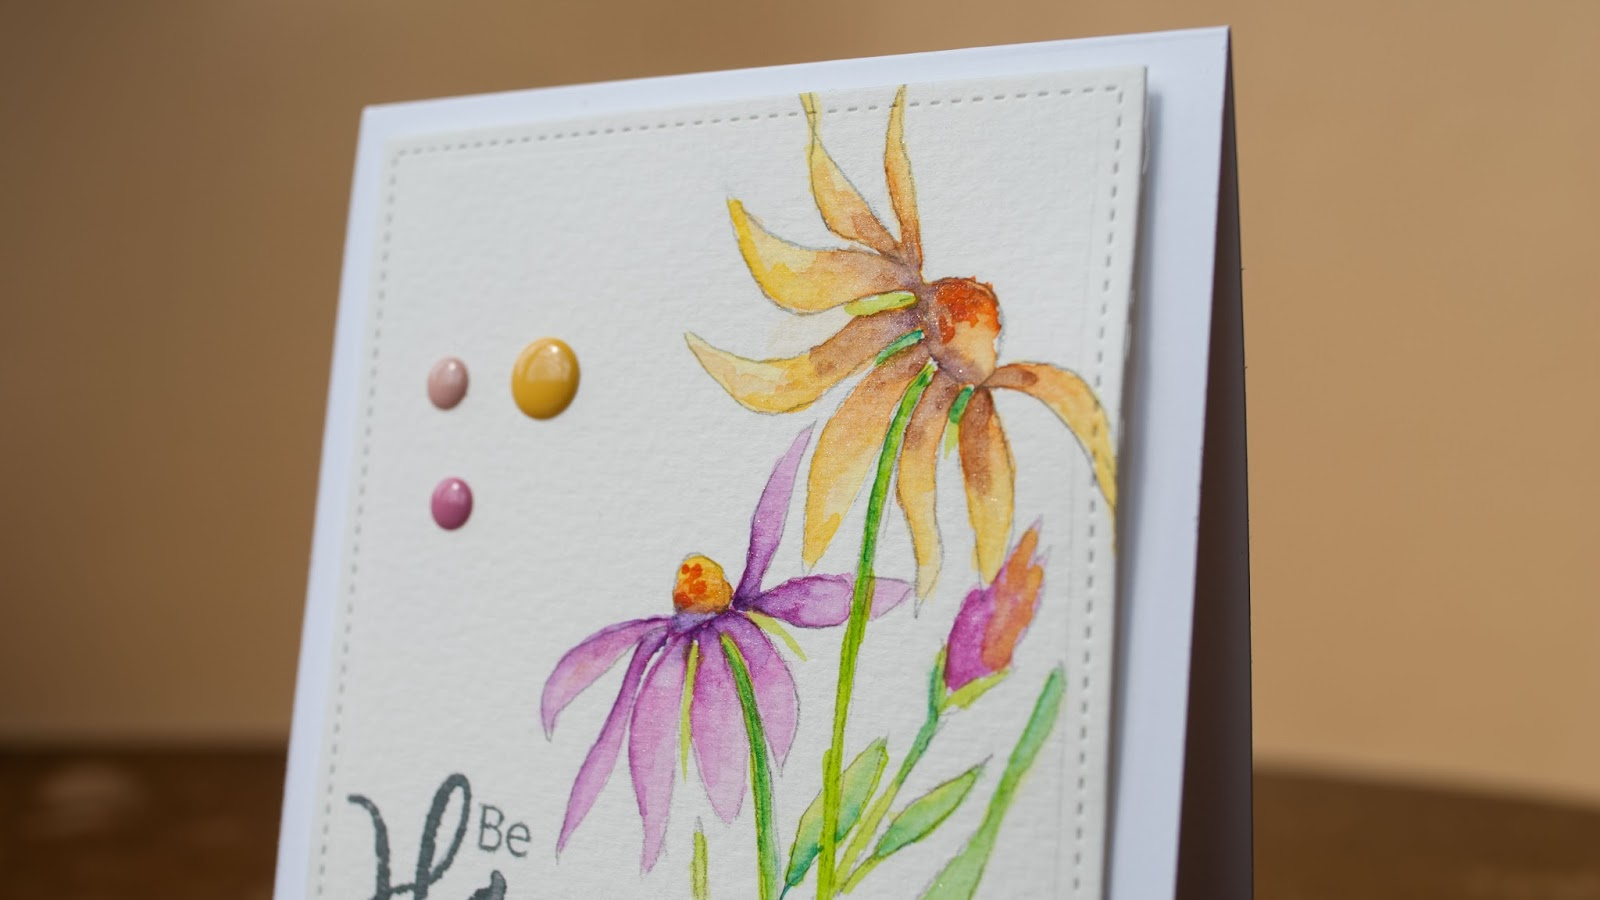 watercolor card be happy, cone flowers hand drawn finished project flower detail